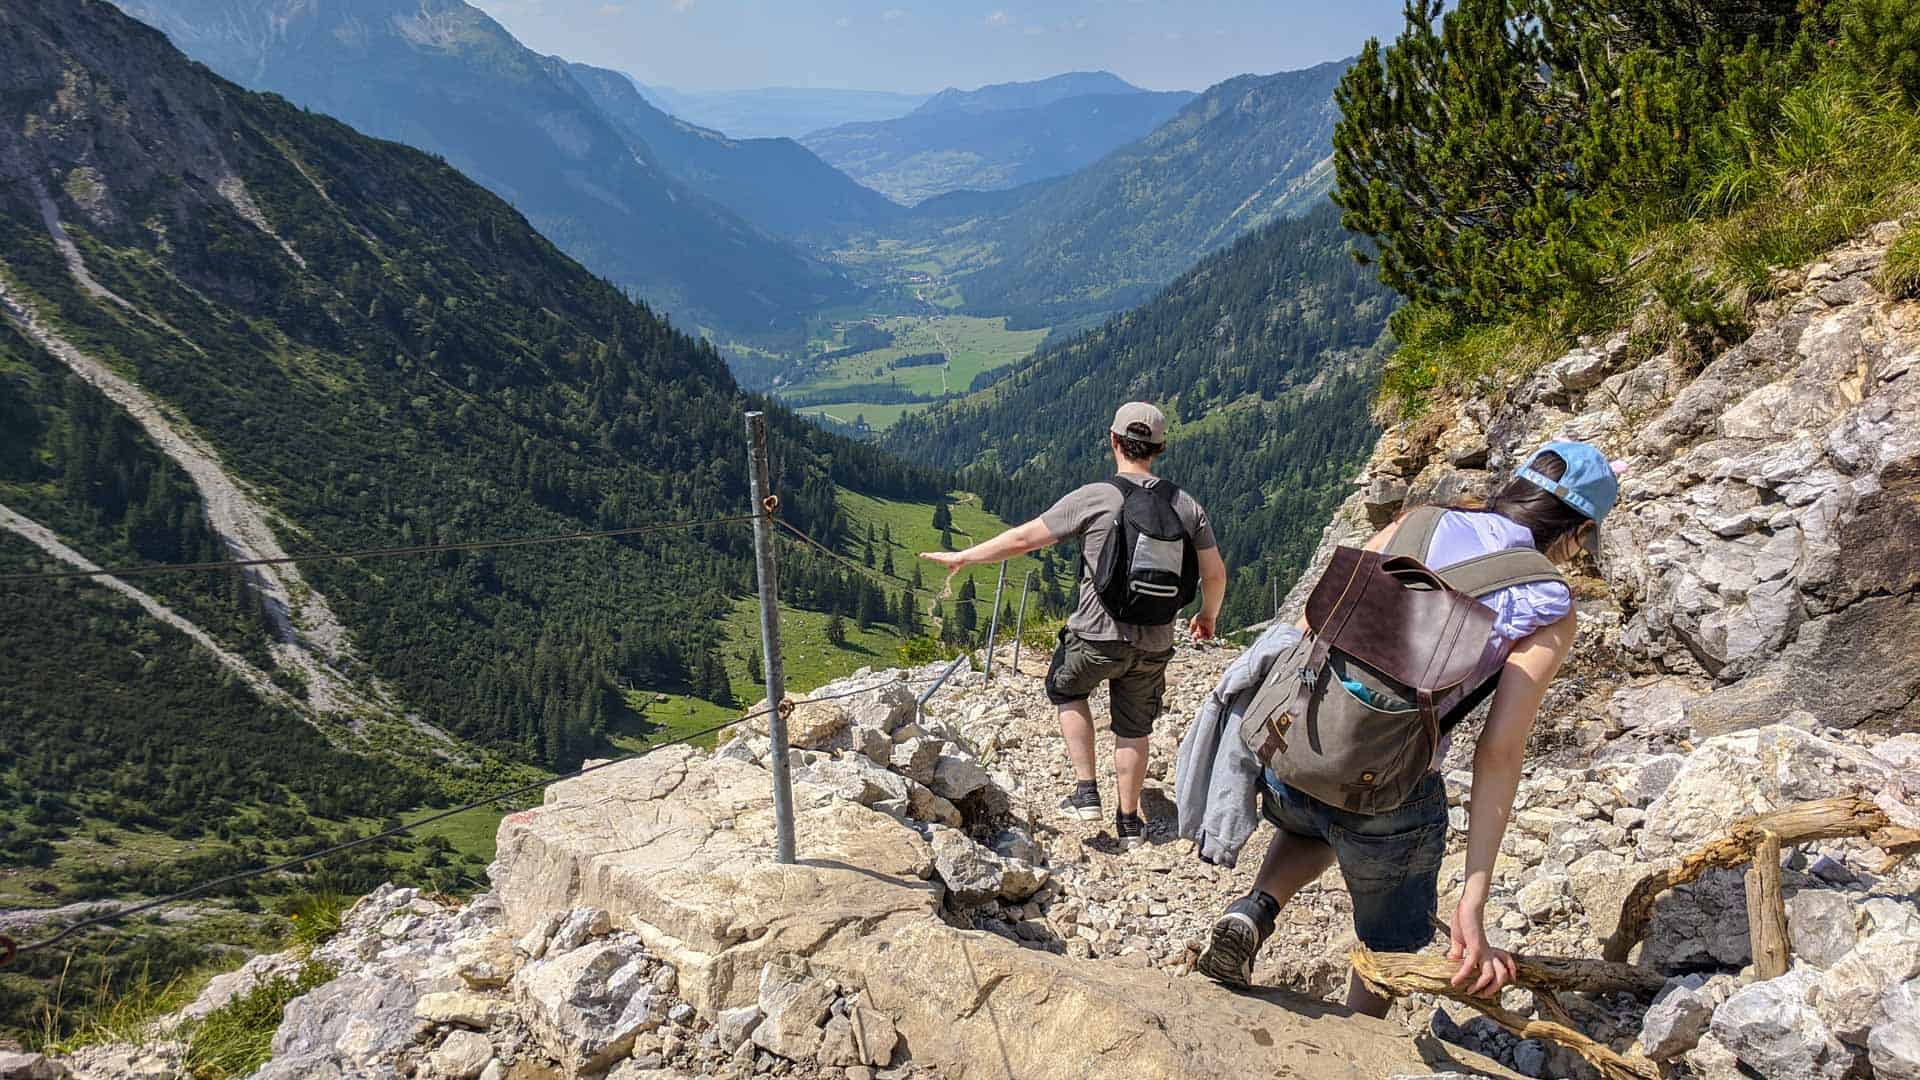 Going down from lake Schrecksee